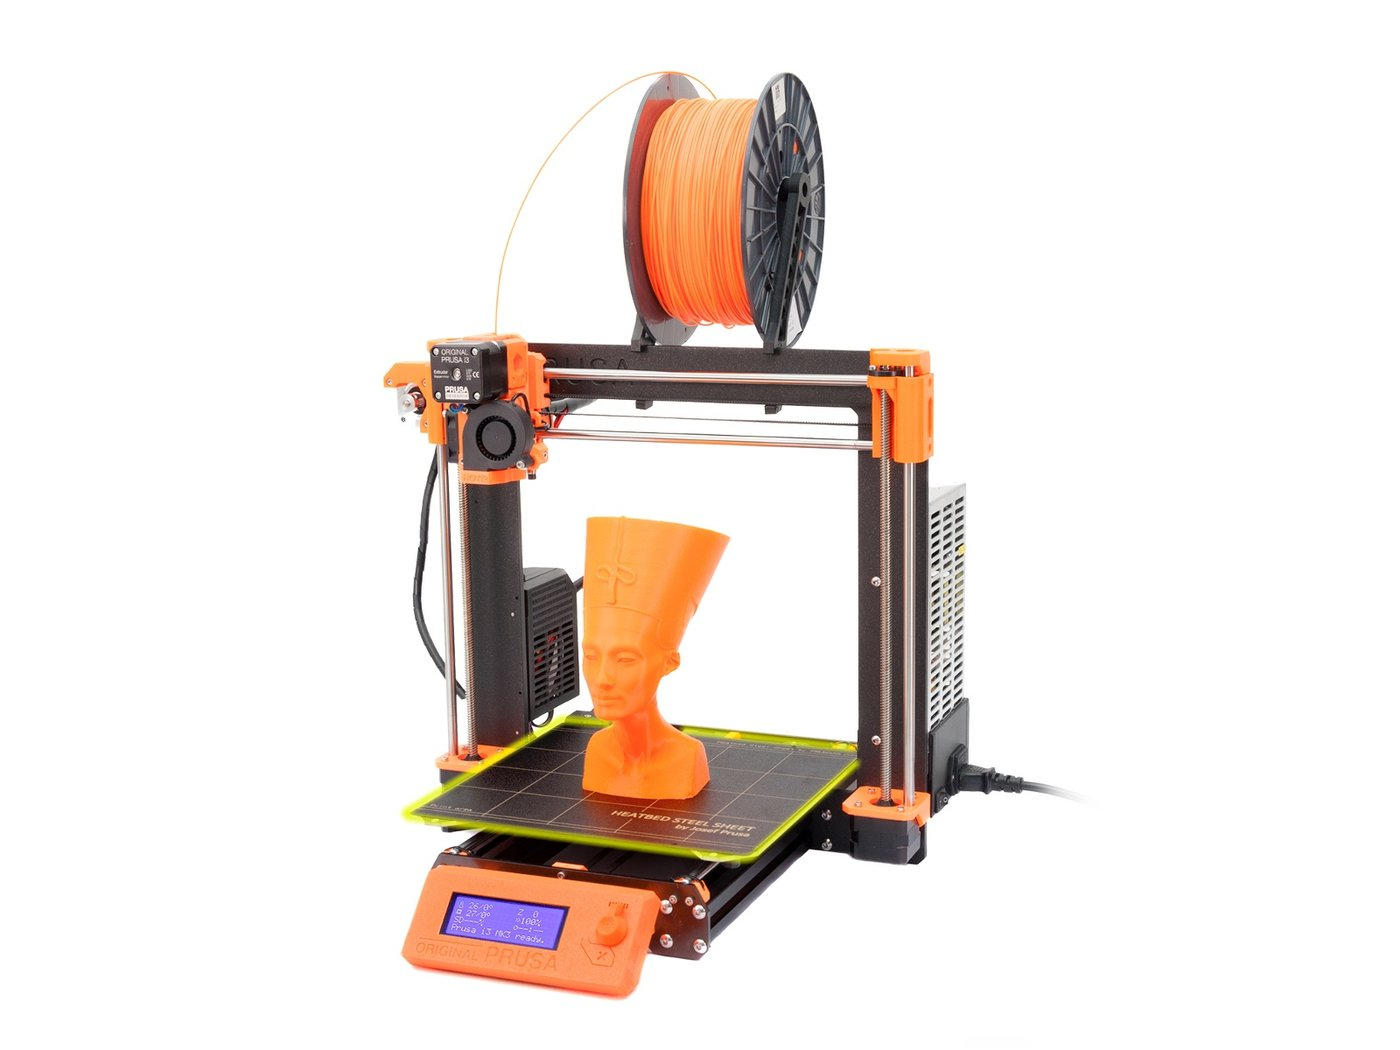 prusa-research-3d-printers-original-reprap-prusa-i3-mk3-diy-kit-1_1400x.jpeg